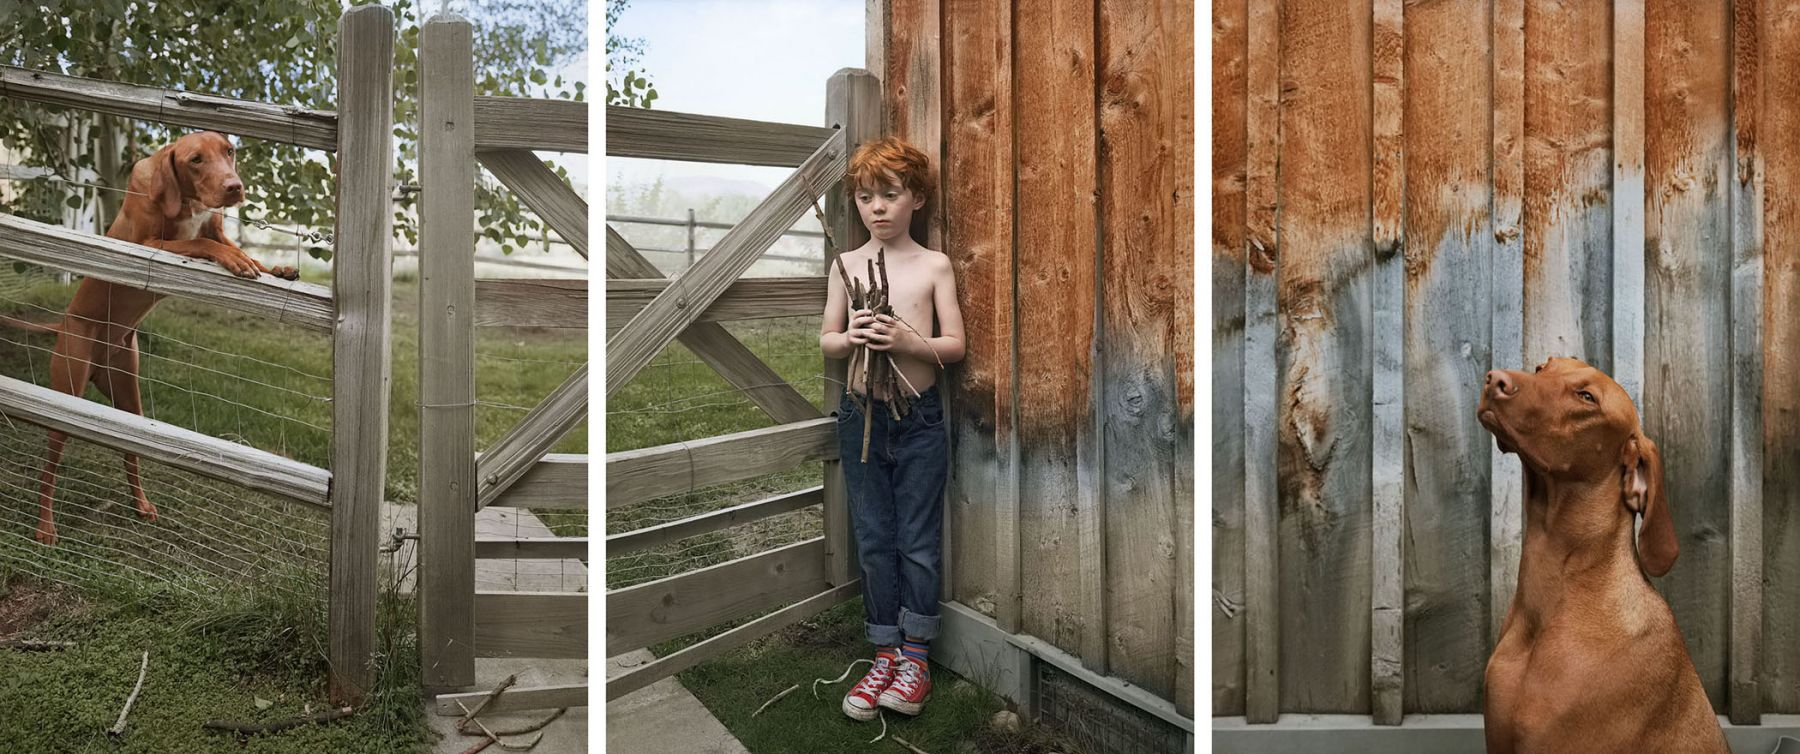 Still with Sticks, 2013. Three-panel archival pigment print, available as24 x 60 or 40 x 90 inches.